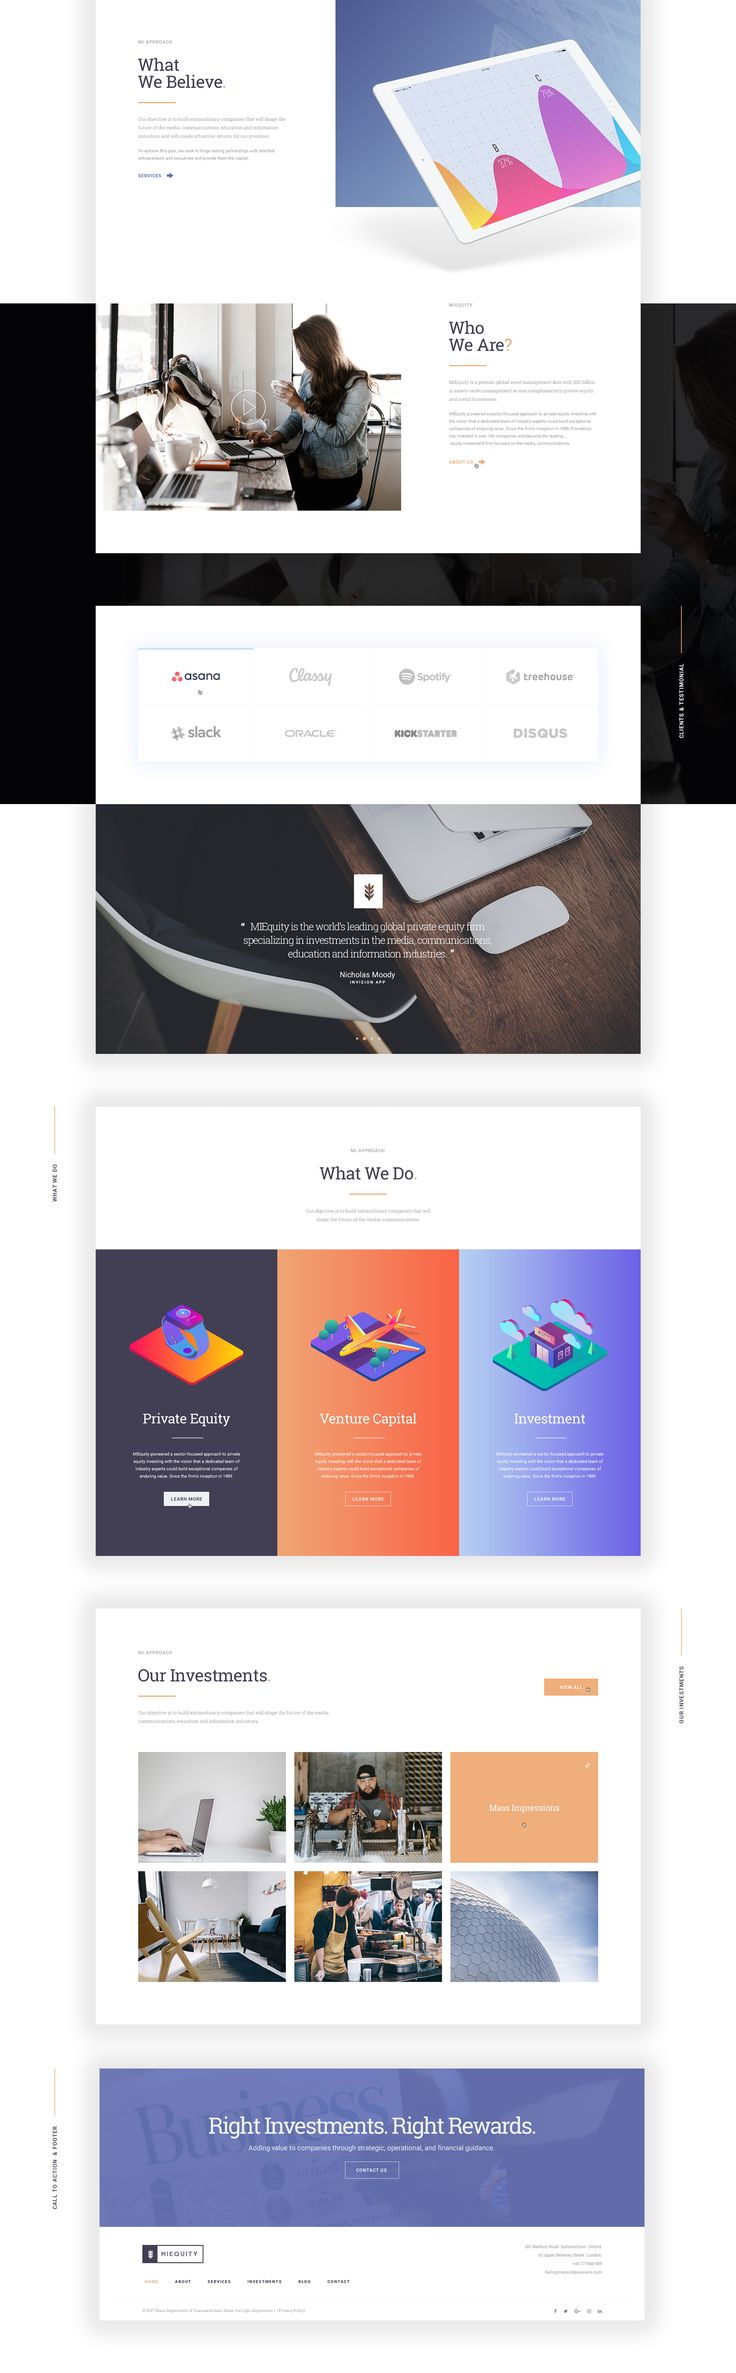 MIEQUITY - Free Website PSD Template on Behance